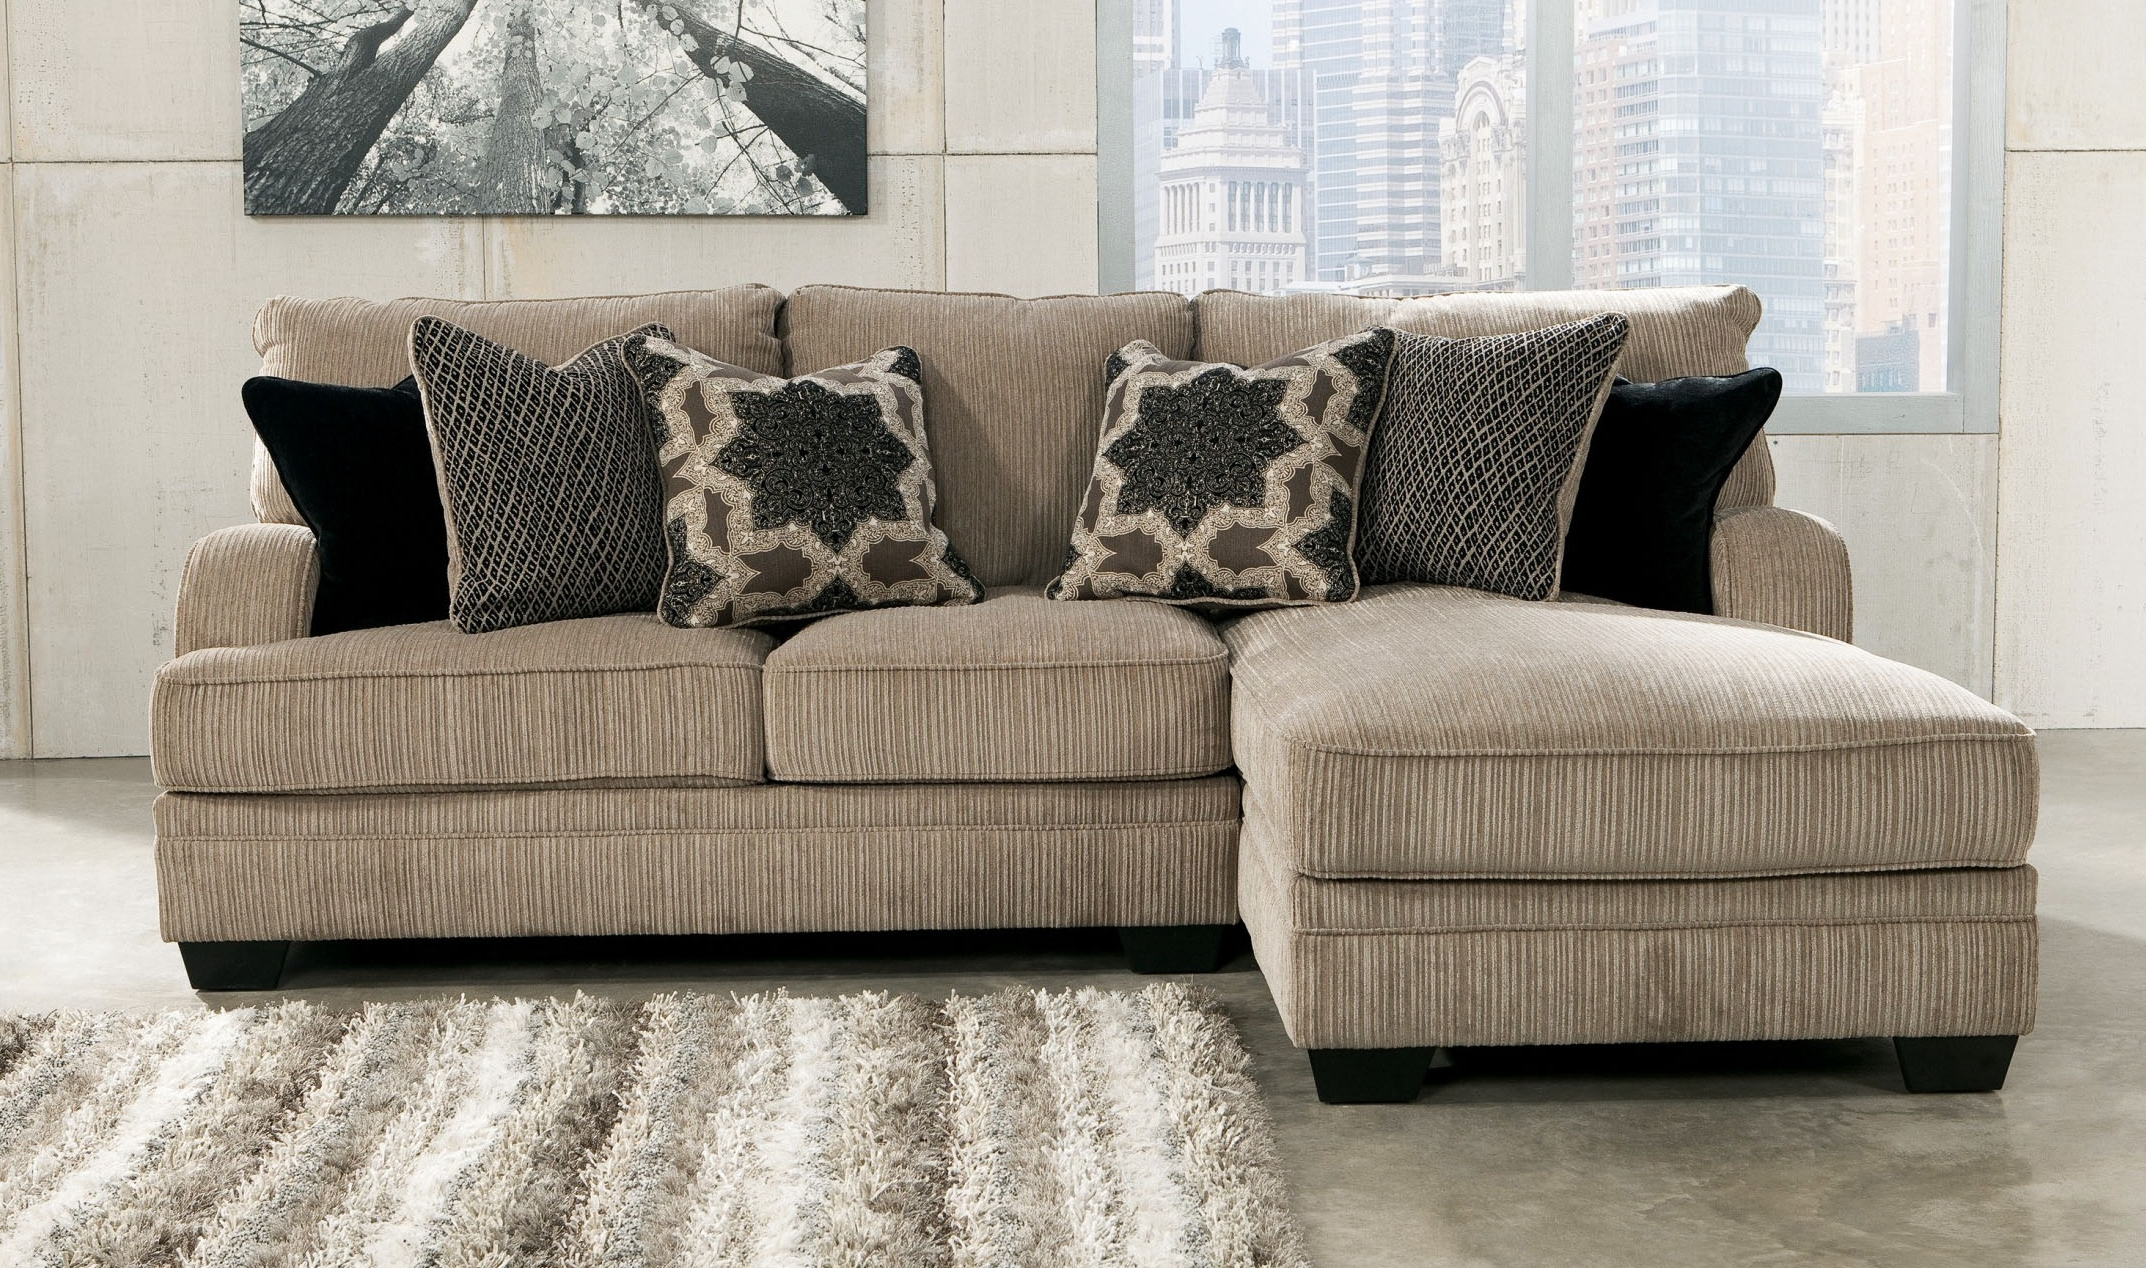 Ethan Mordden Modern Sofa Set Designs For Living Room Charcoal Intended For Well Liked Modern Sectional Sofas For Small Spaces (View 2 of 20)